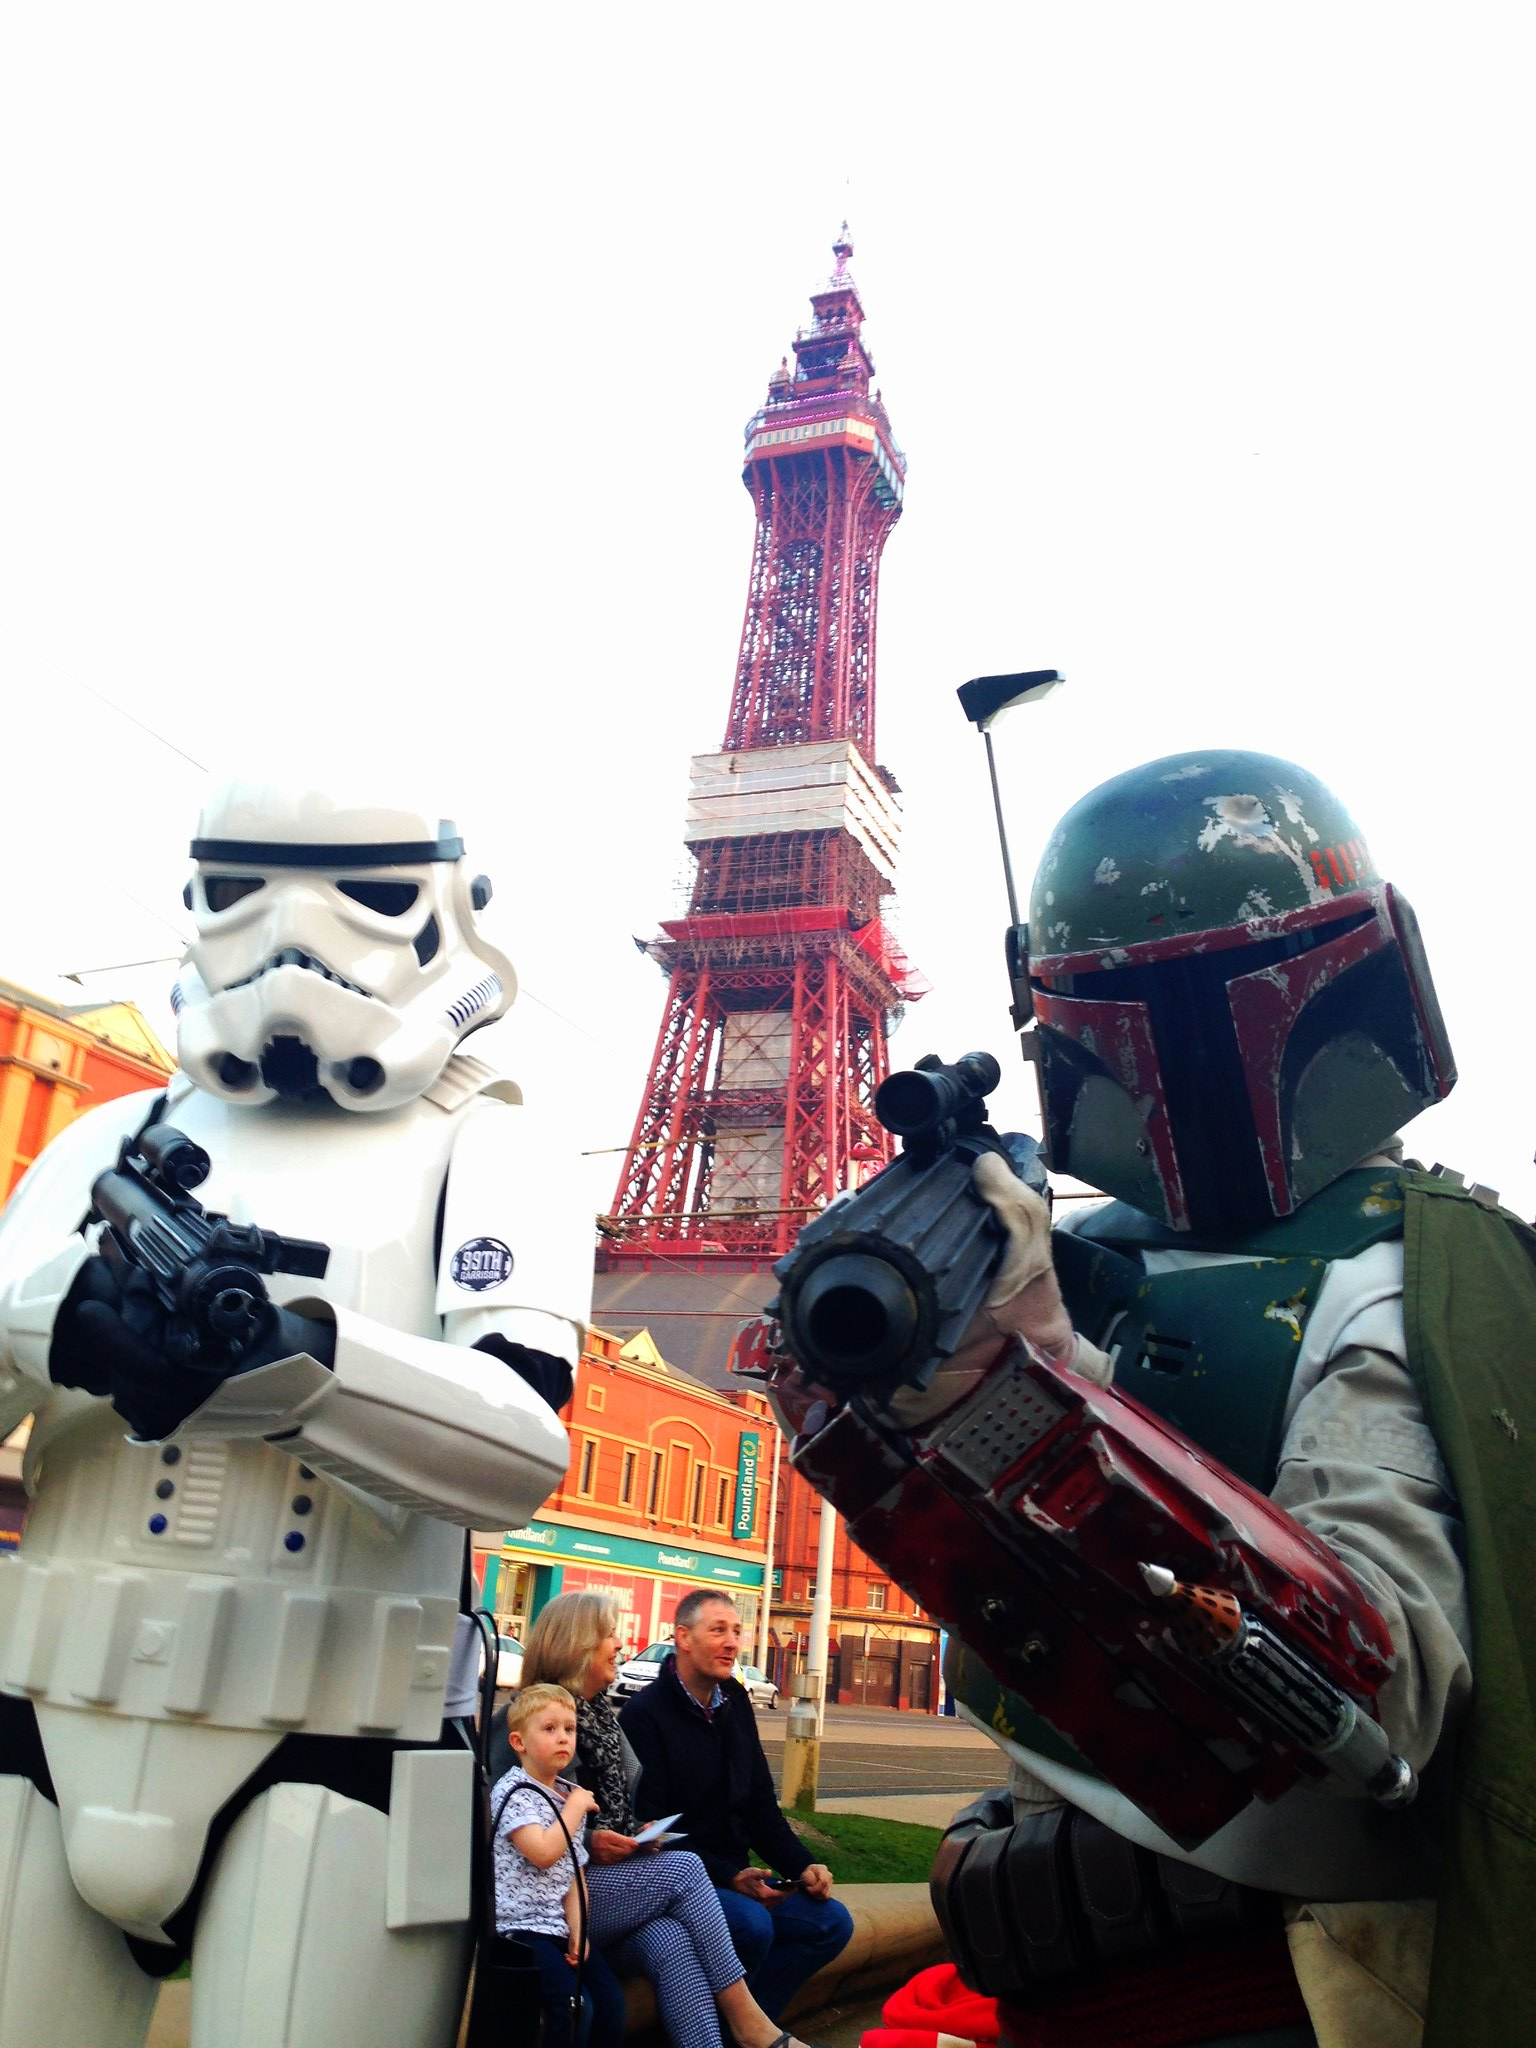 Blackpool Comic-Con Launch Party - Star Wars Stormtrooper and Boba Fett by Blackpool Tower